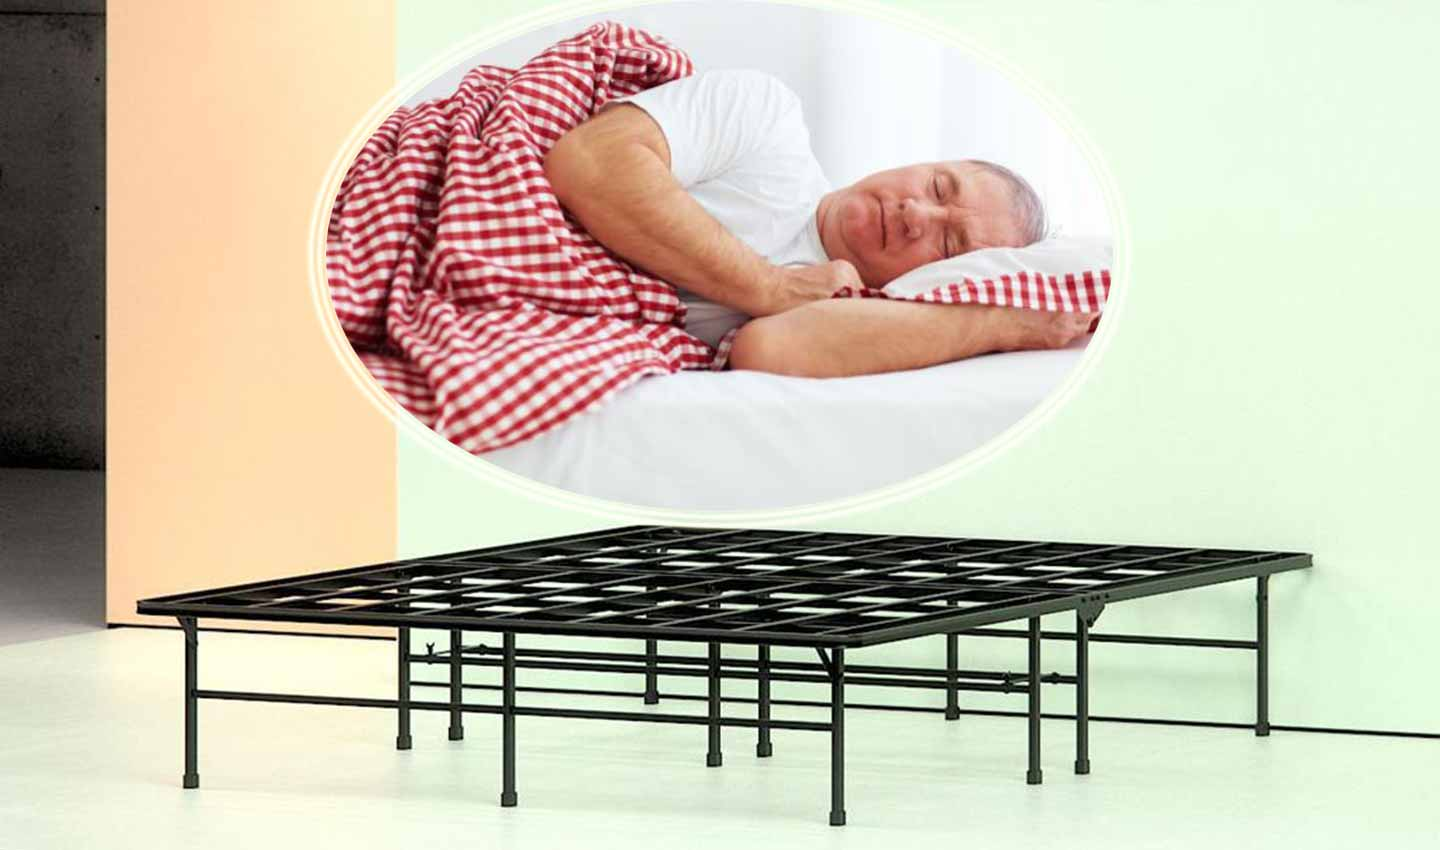 Tempurpedic Vs Sleep Number >> Top Rated 8 Best Bed Frames For Heavy Person Reviews 2020